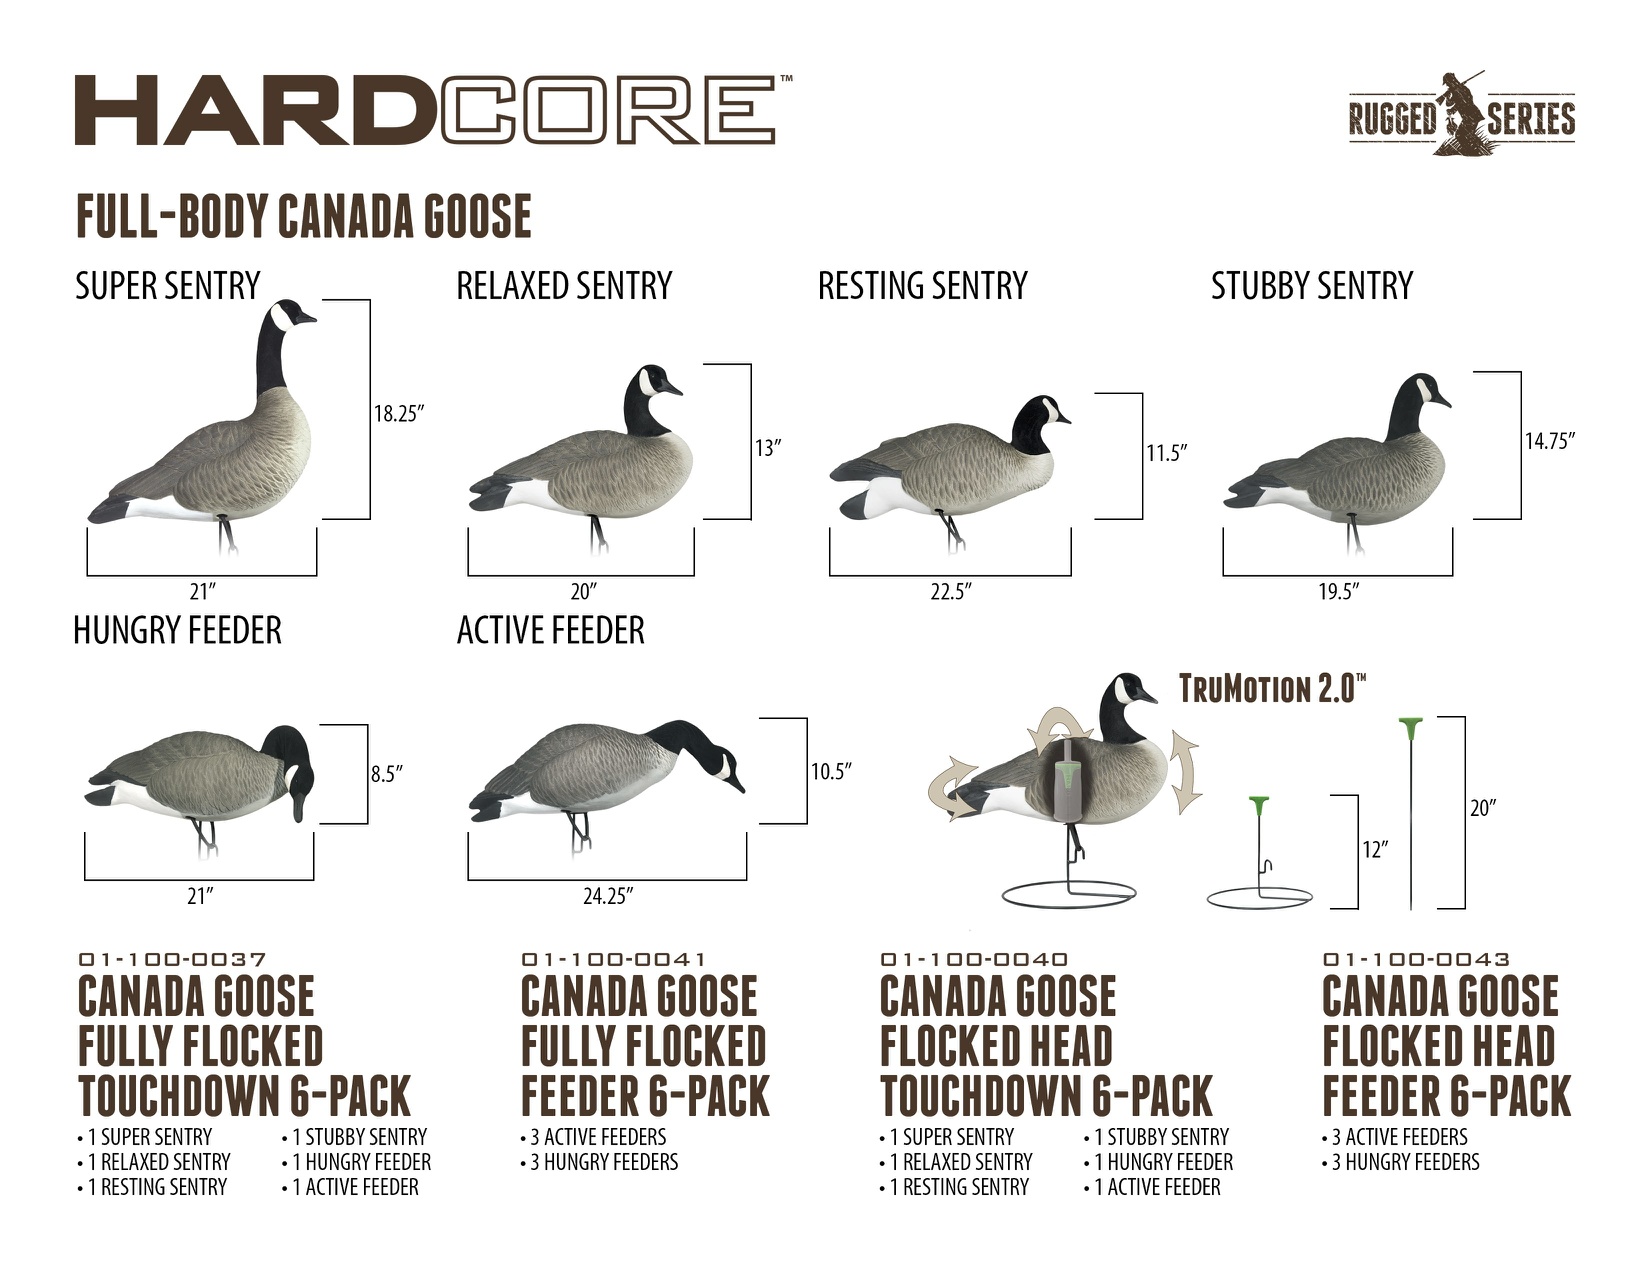 Rugged Series Full Body Canada Goose Decoys - Flocked Head Feeder & Touchdown Packs